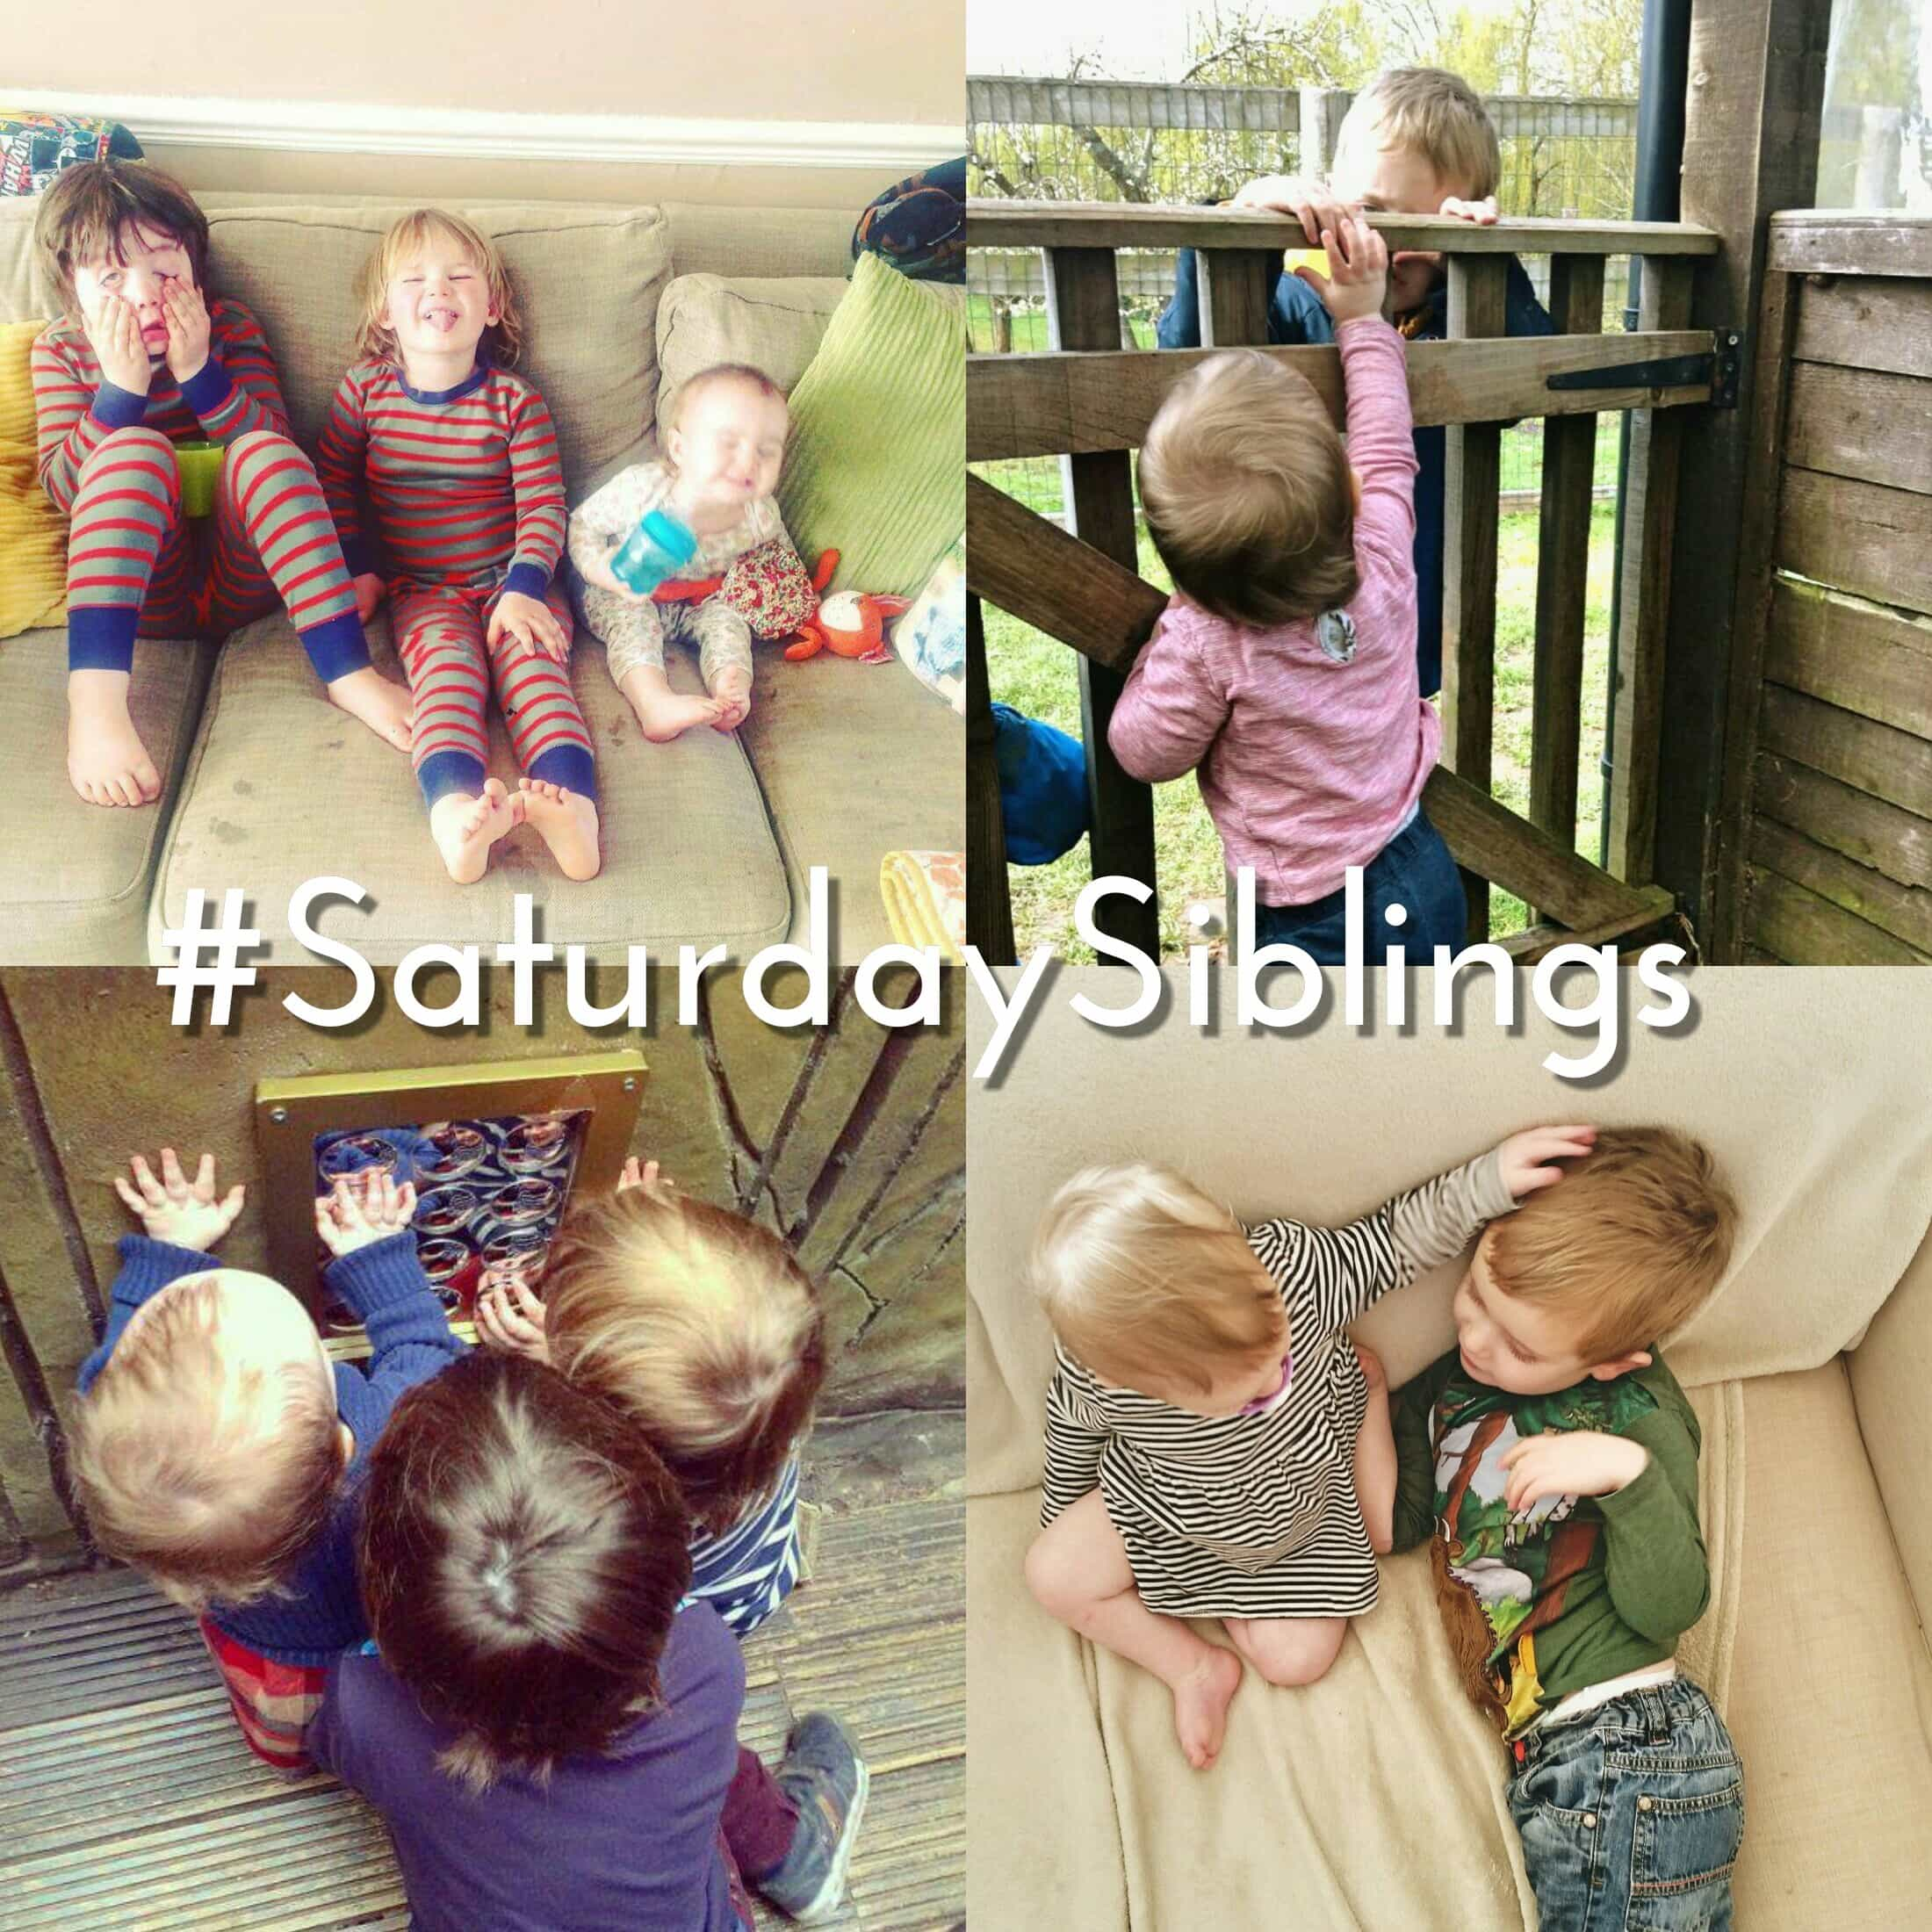 #SaturdaySiblings